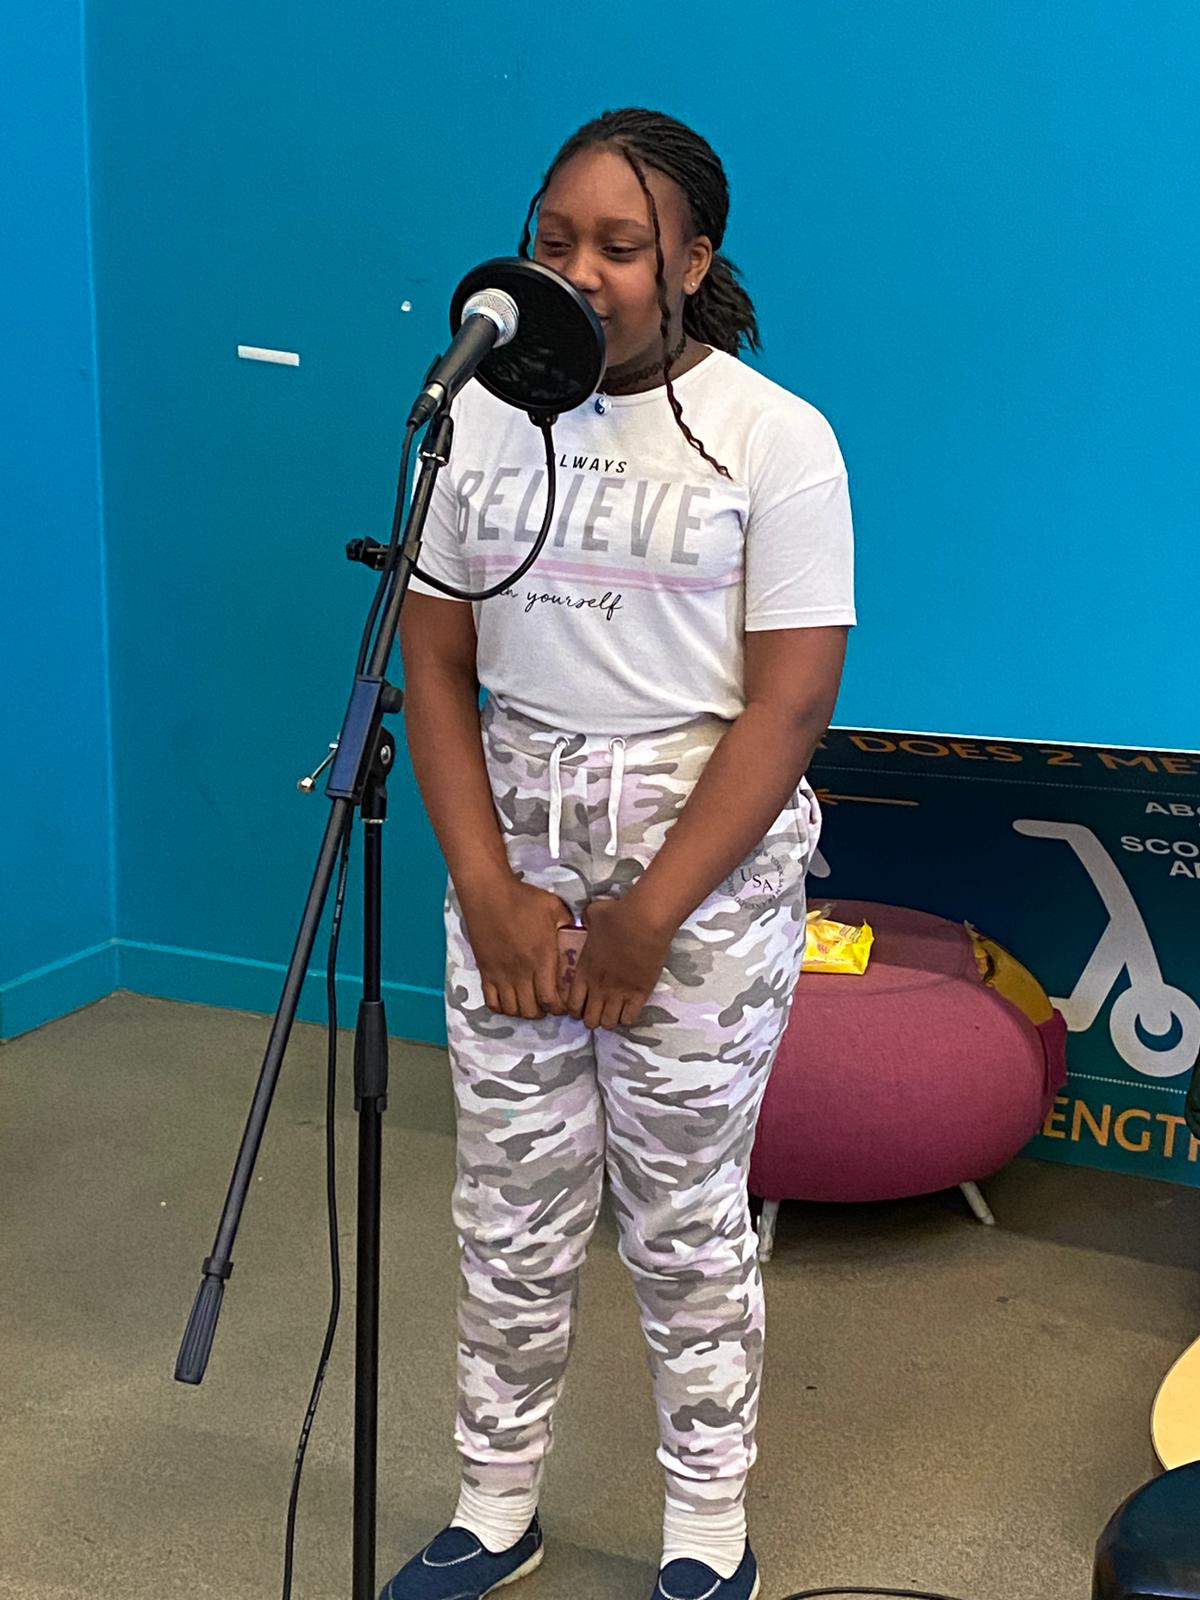 A young person sings into a microphone at a drama workshop.